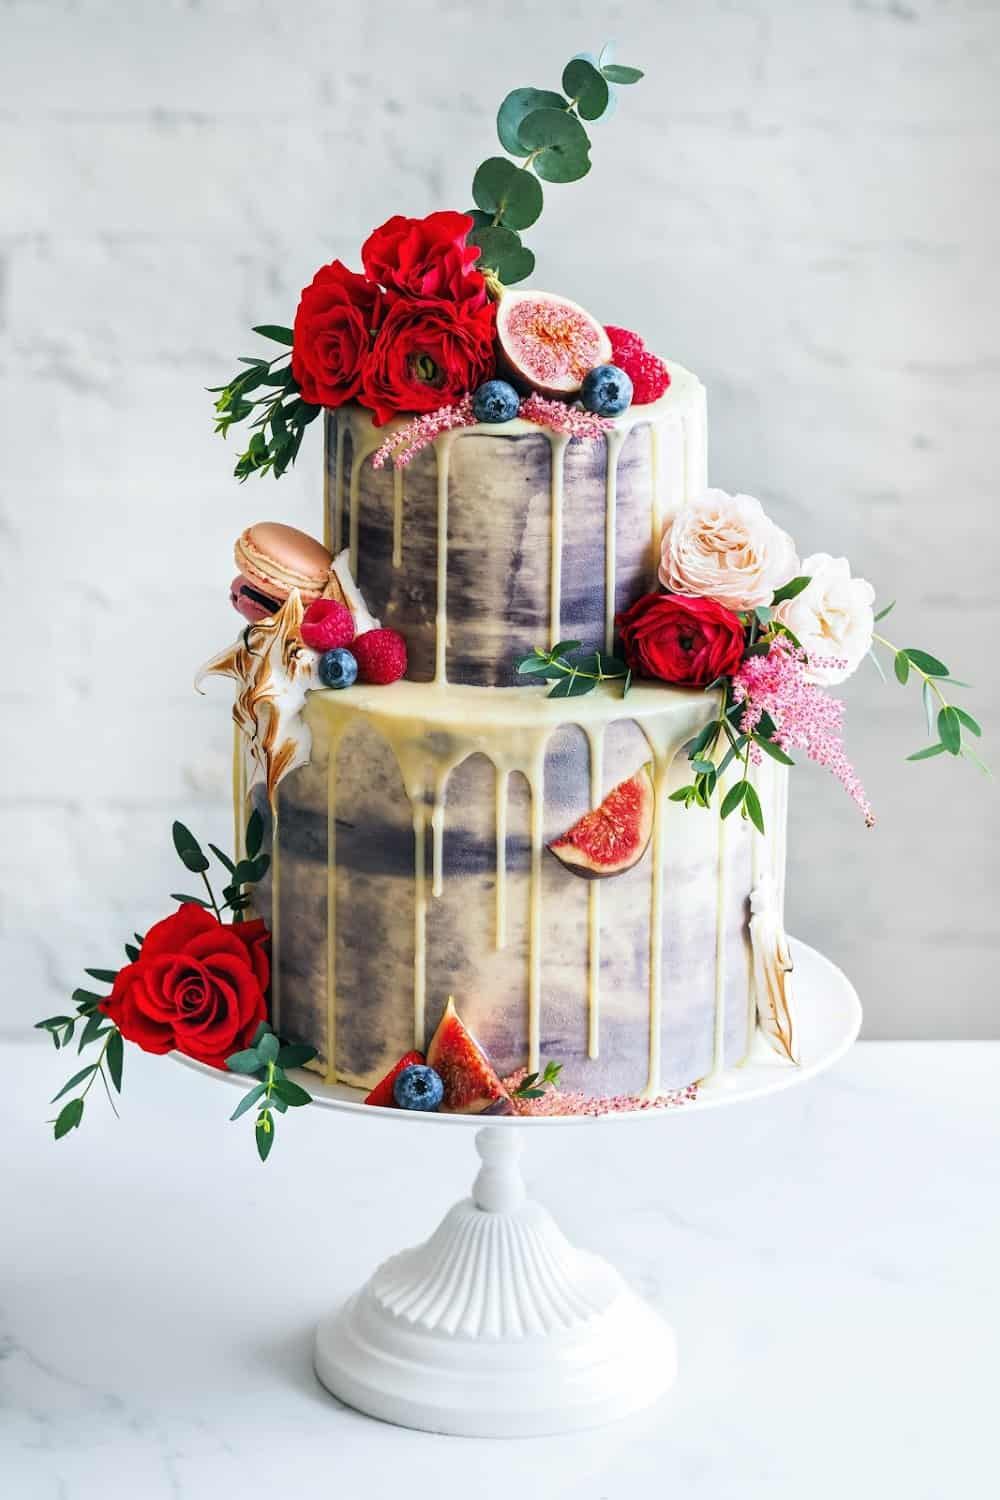 Wedding cake with flowers, figs, macarons and blueberries